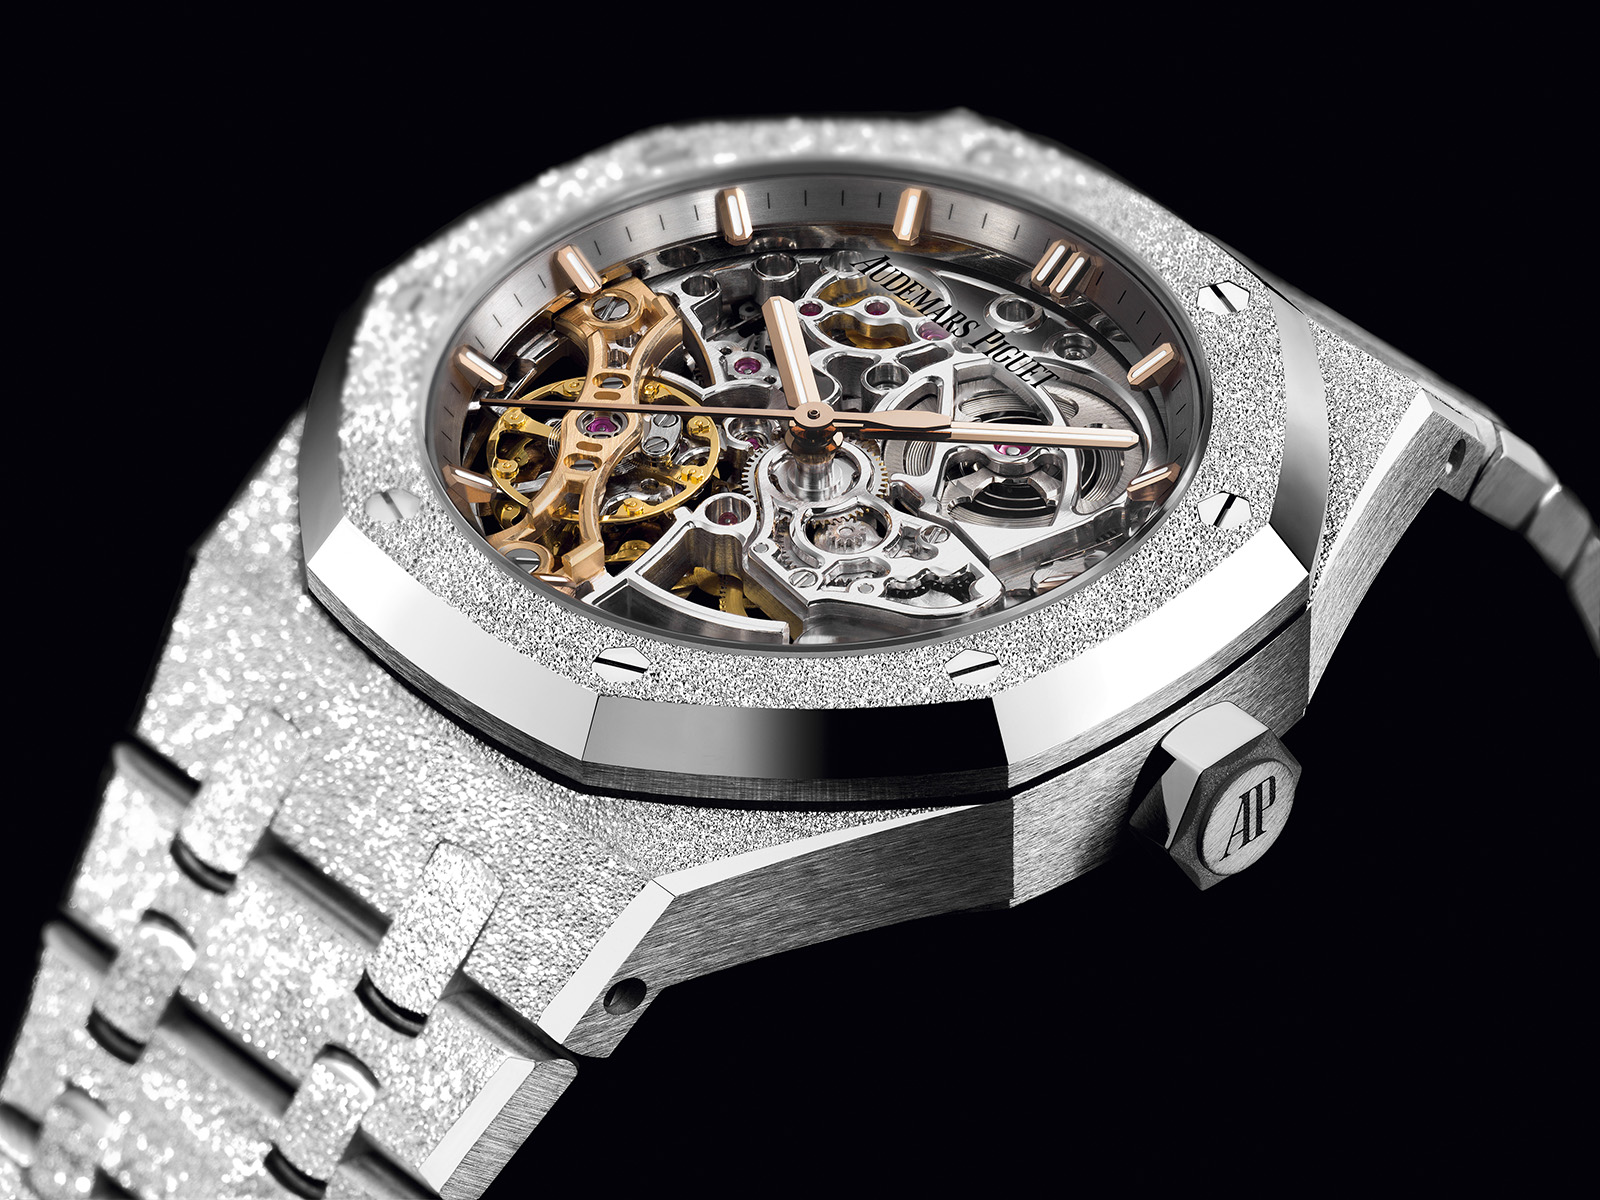 Royal Oak Doble Volante Esqueletizado RO_15466BC-66-1259BC-01